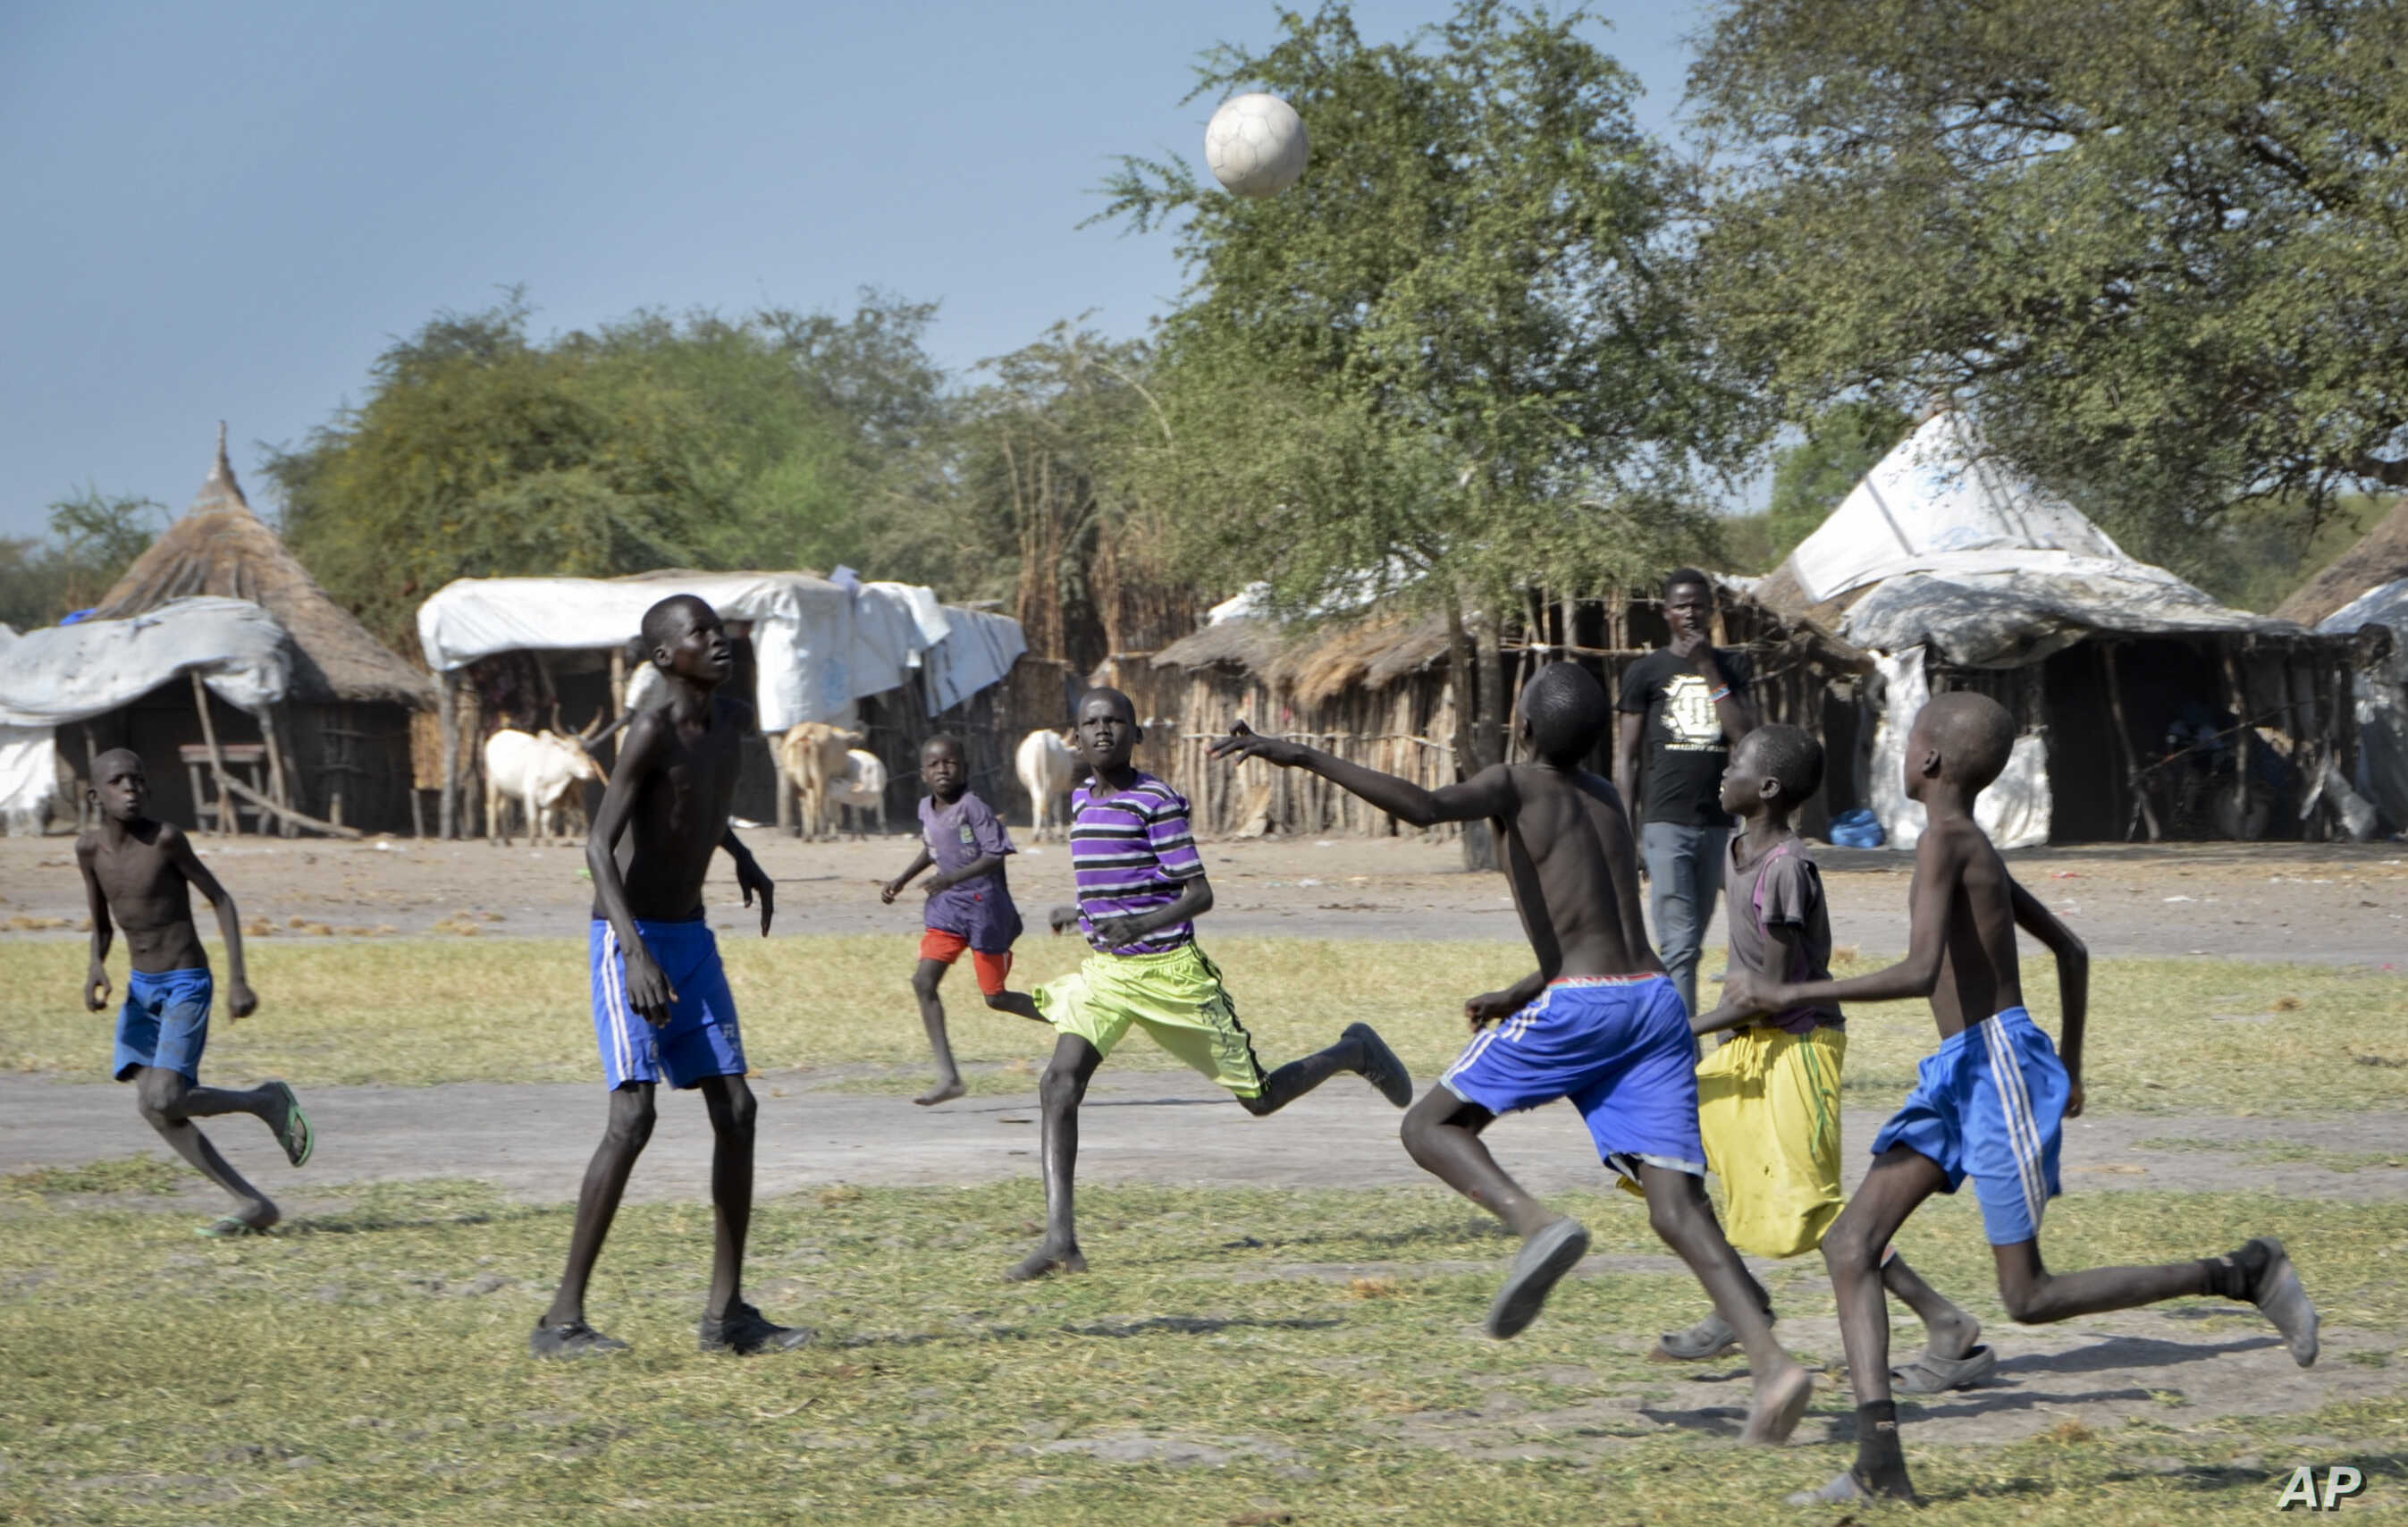 South Sudan Hopes Sports Can Promote Peace | Voice of